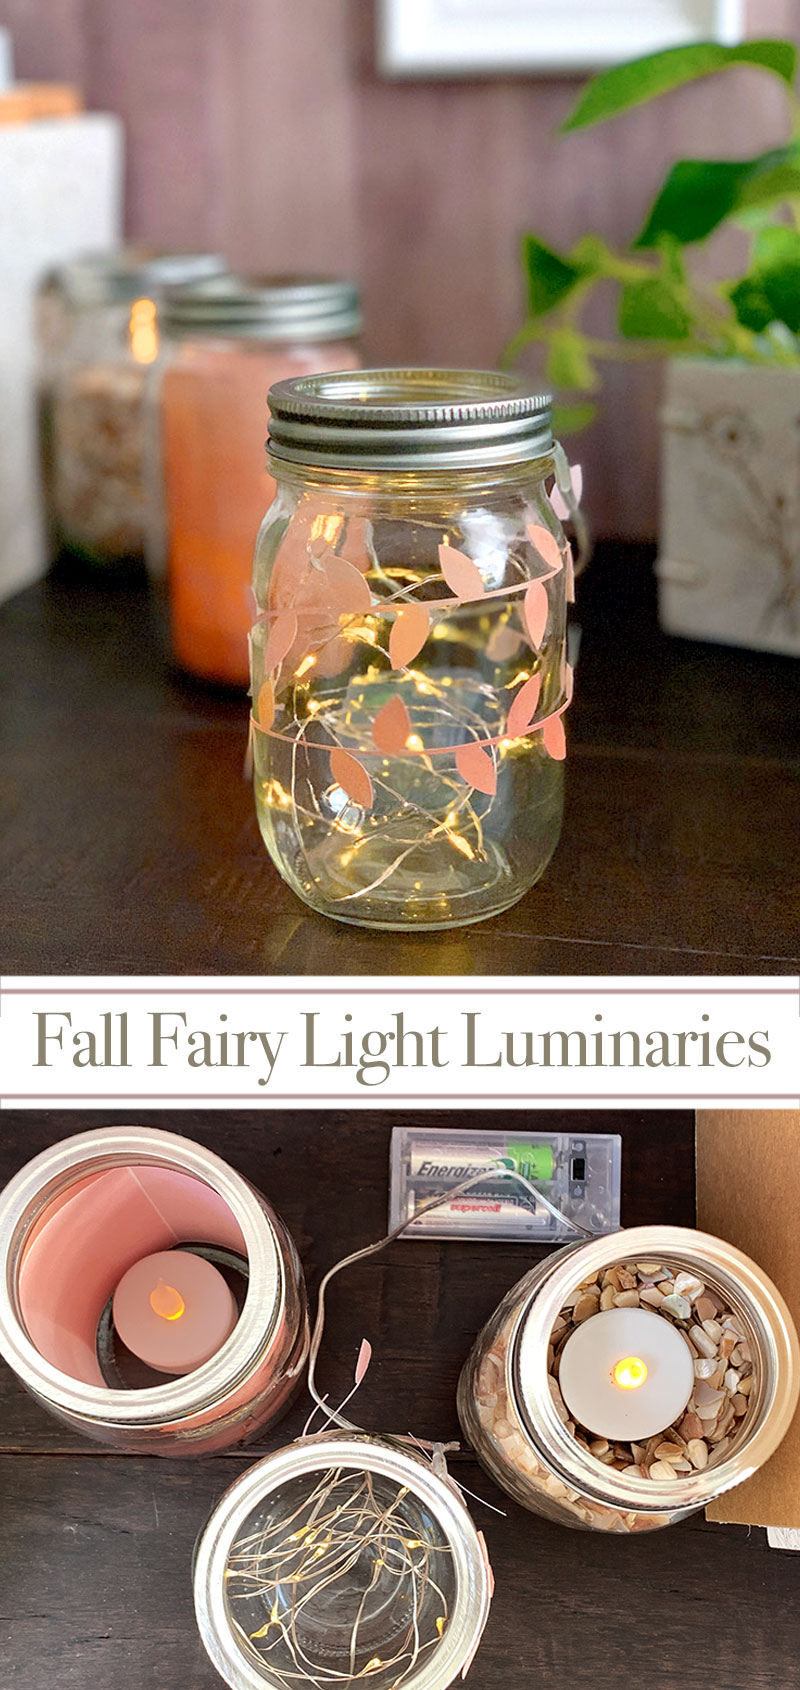 Make this fall fairy light luminary with your Cricut machine in minutes! A cute craft idea that will look gorgeous in your autumn home decor! #cricut #cricutmade #fall #autumn